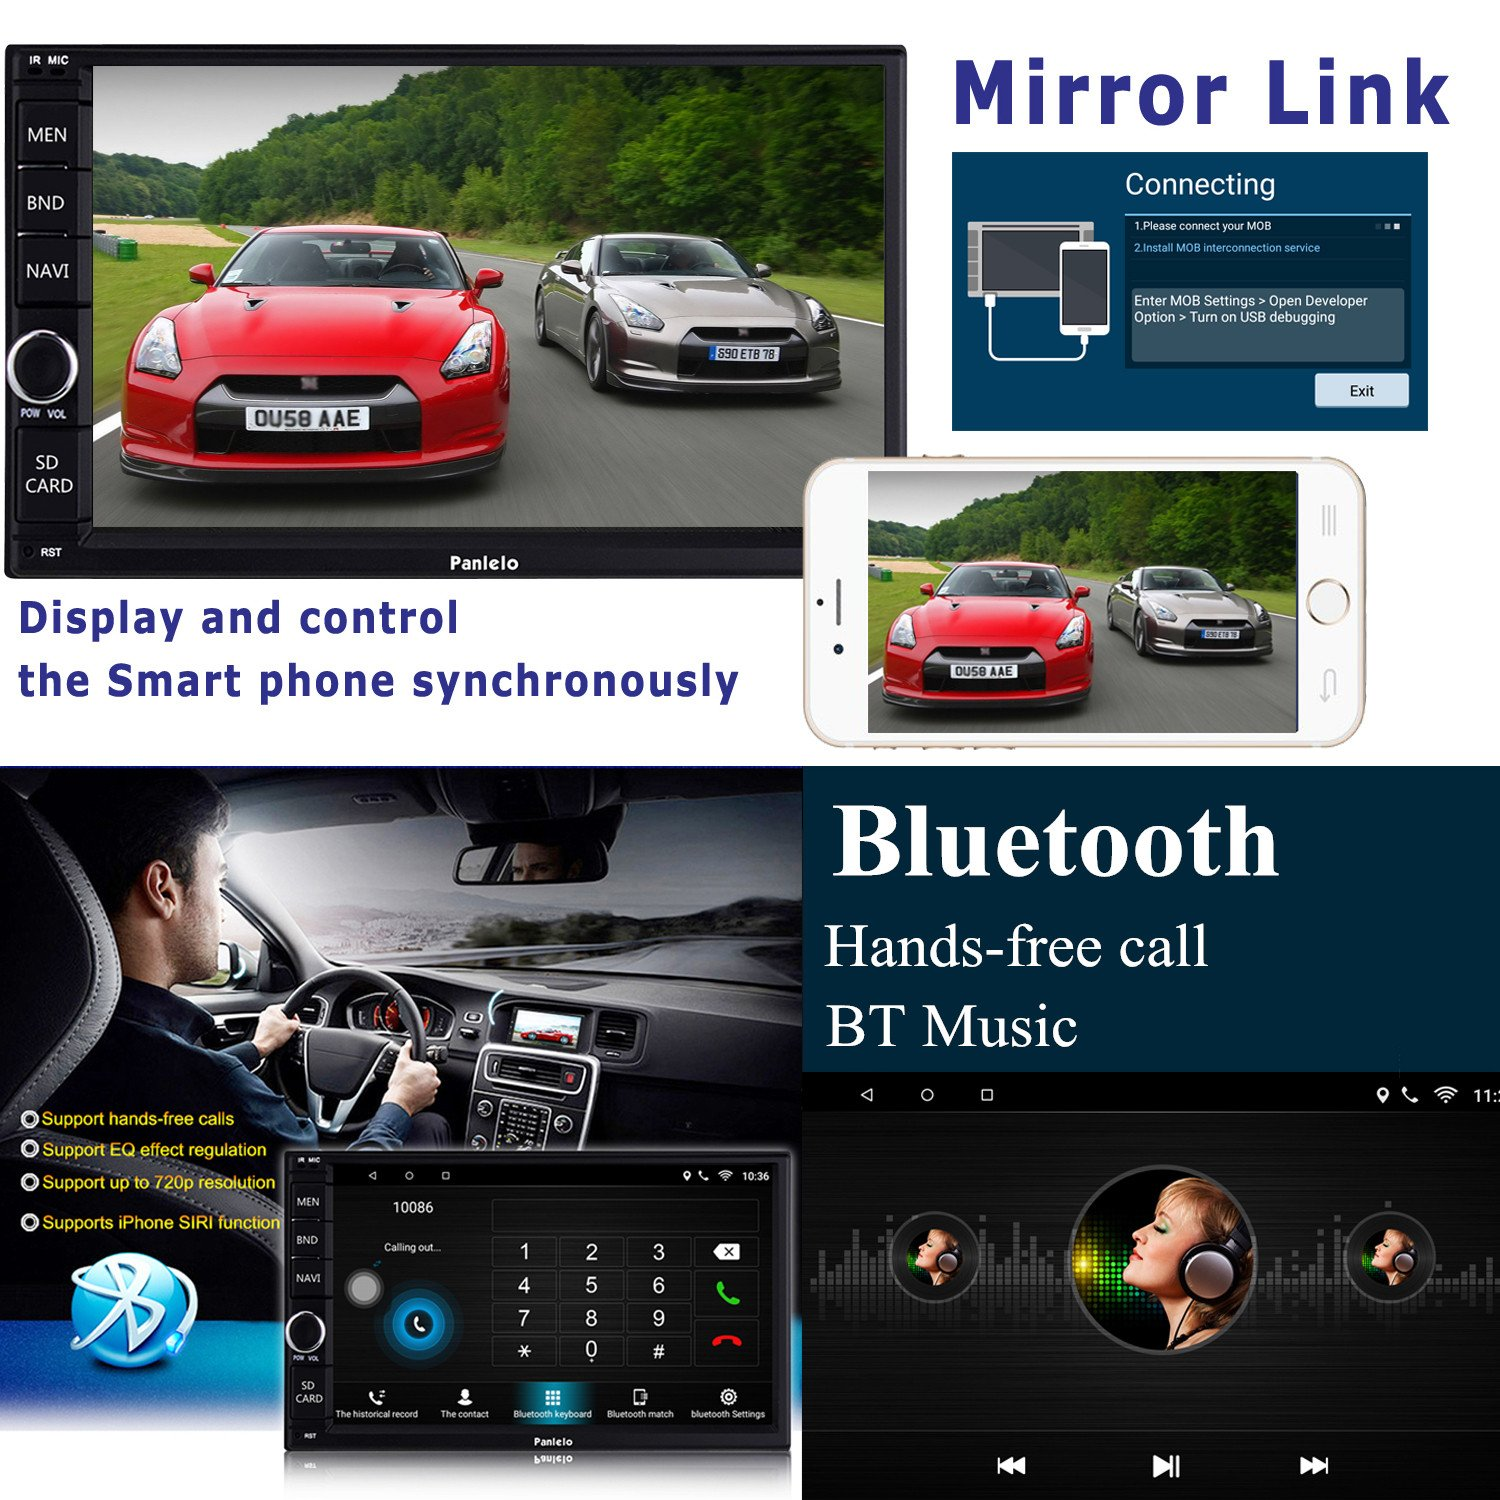 Panlelo PA012s Android 6.0 Car Stereo Double Din Car GPS Navigation 7 inch Car Radio Head Units Touch Screen BT WIFI Mirror Link SWC Quad Core 1GB RAM 16GB ROM AM/FM/RDS by Panlelo (Image #2)